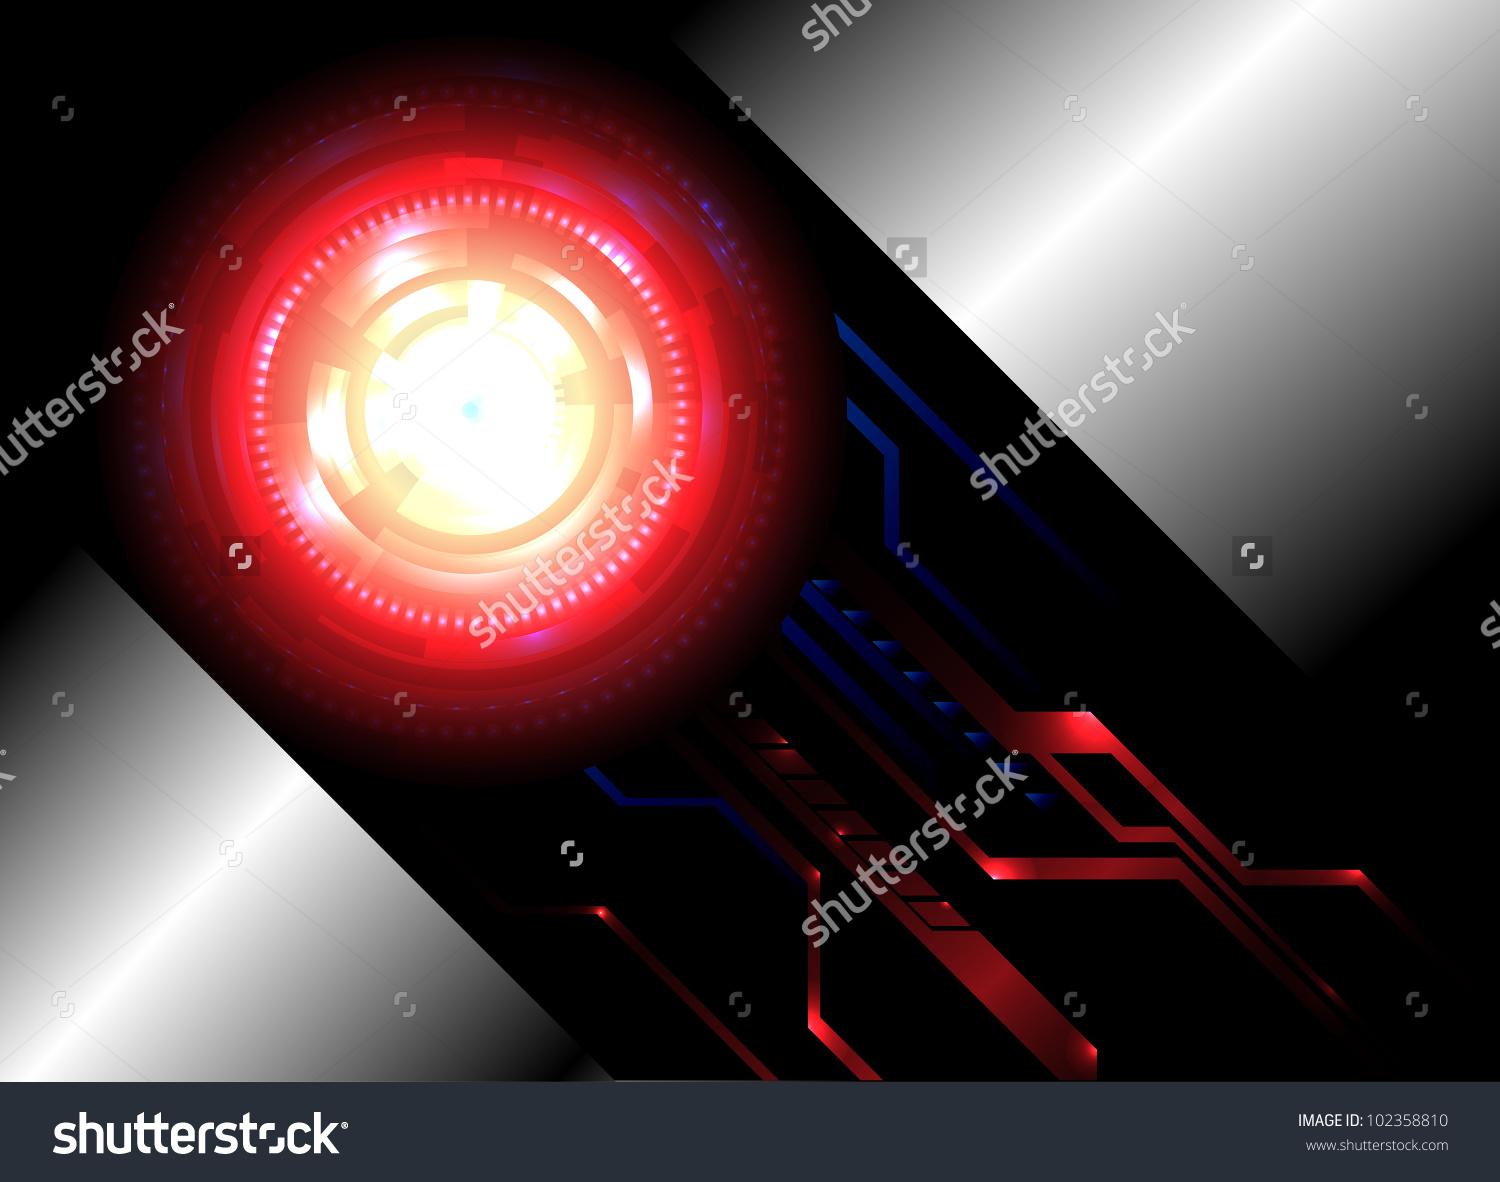 Abstract Background For Futuristic High Tech Design. Clip.